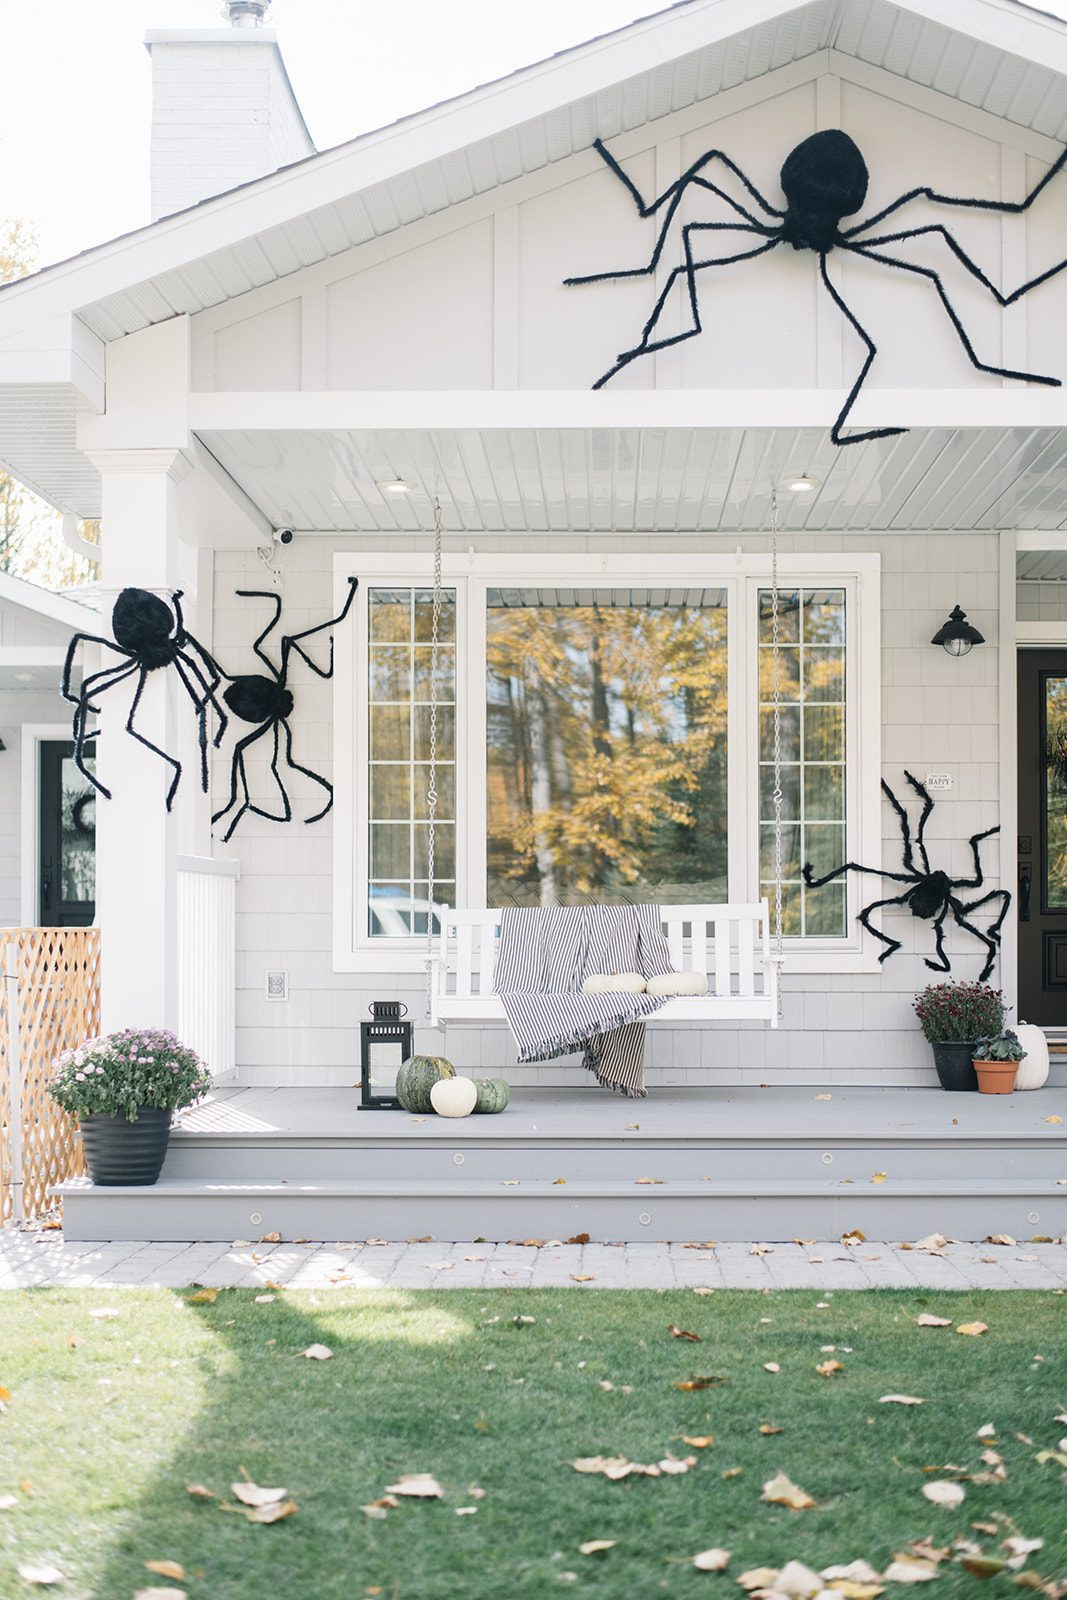 faux spiders attached to front porch pillars on house